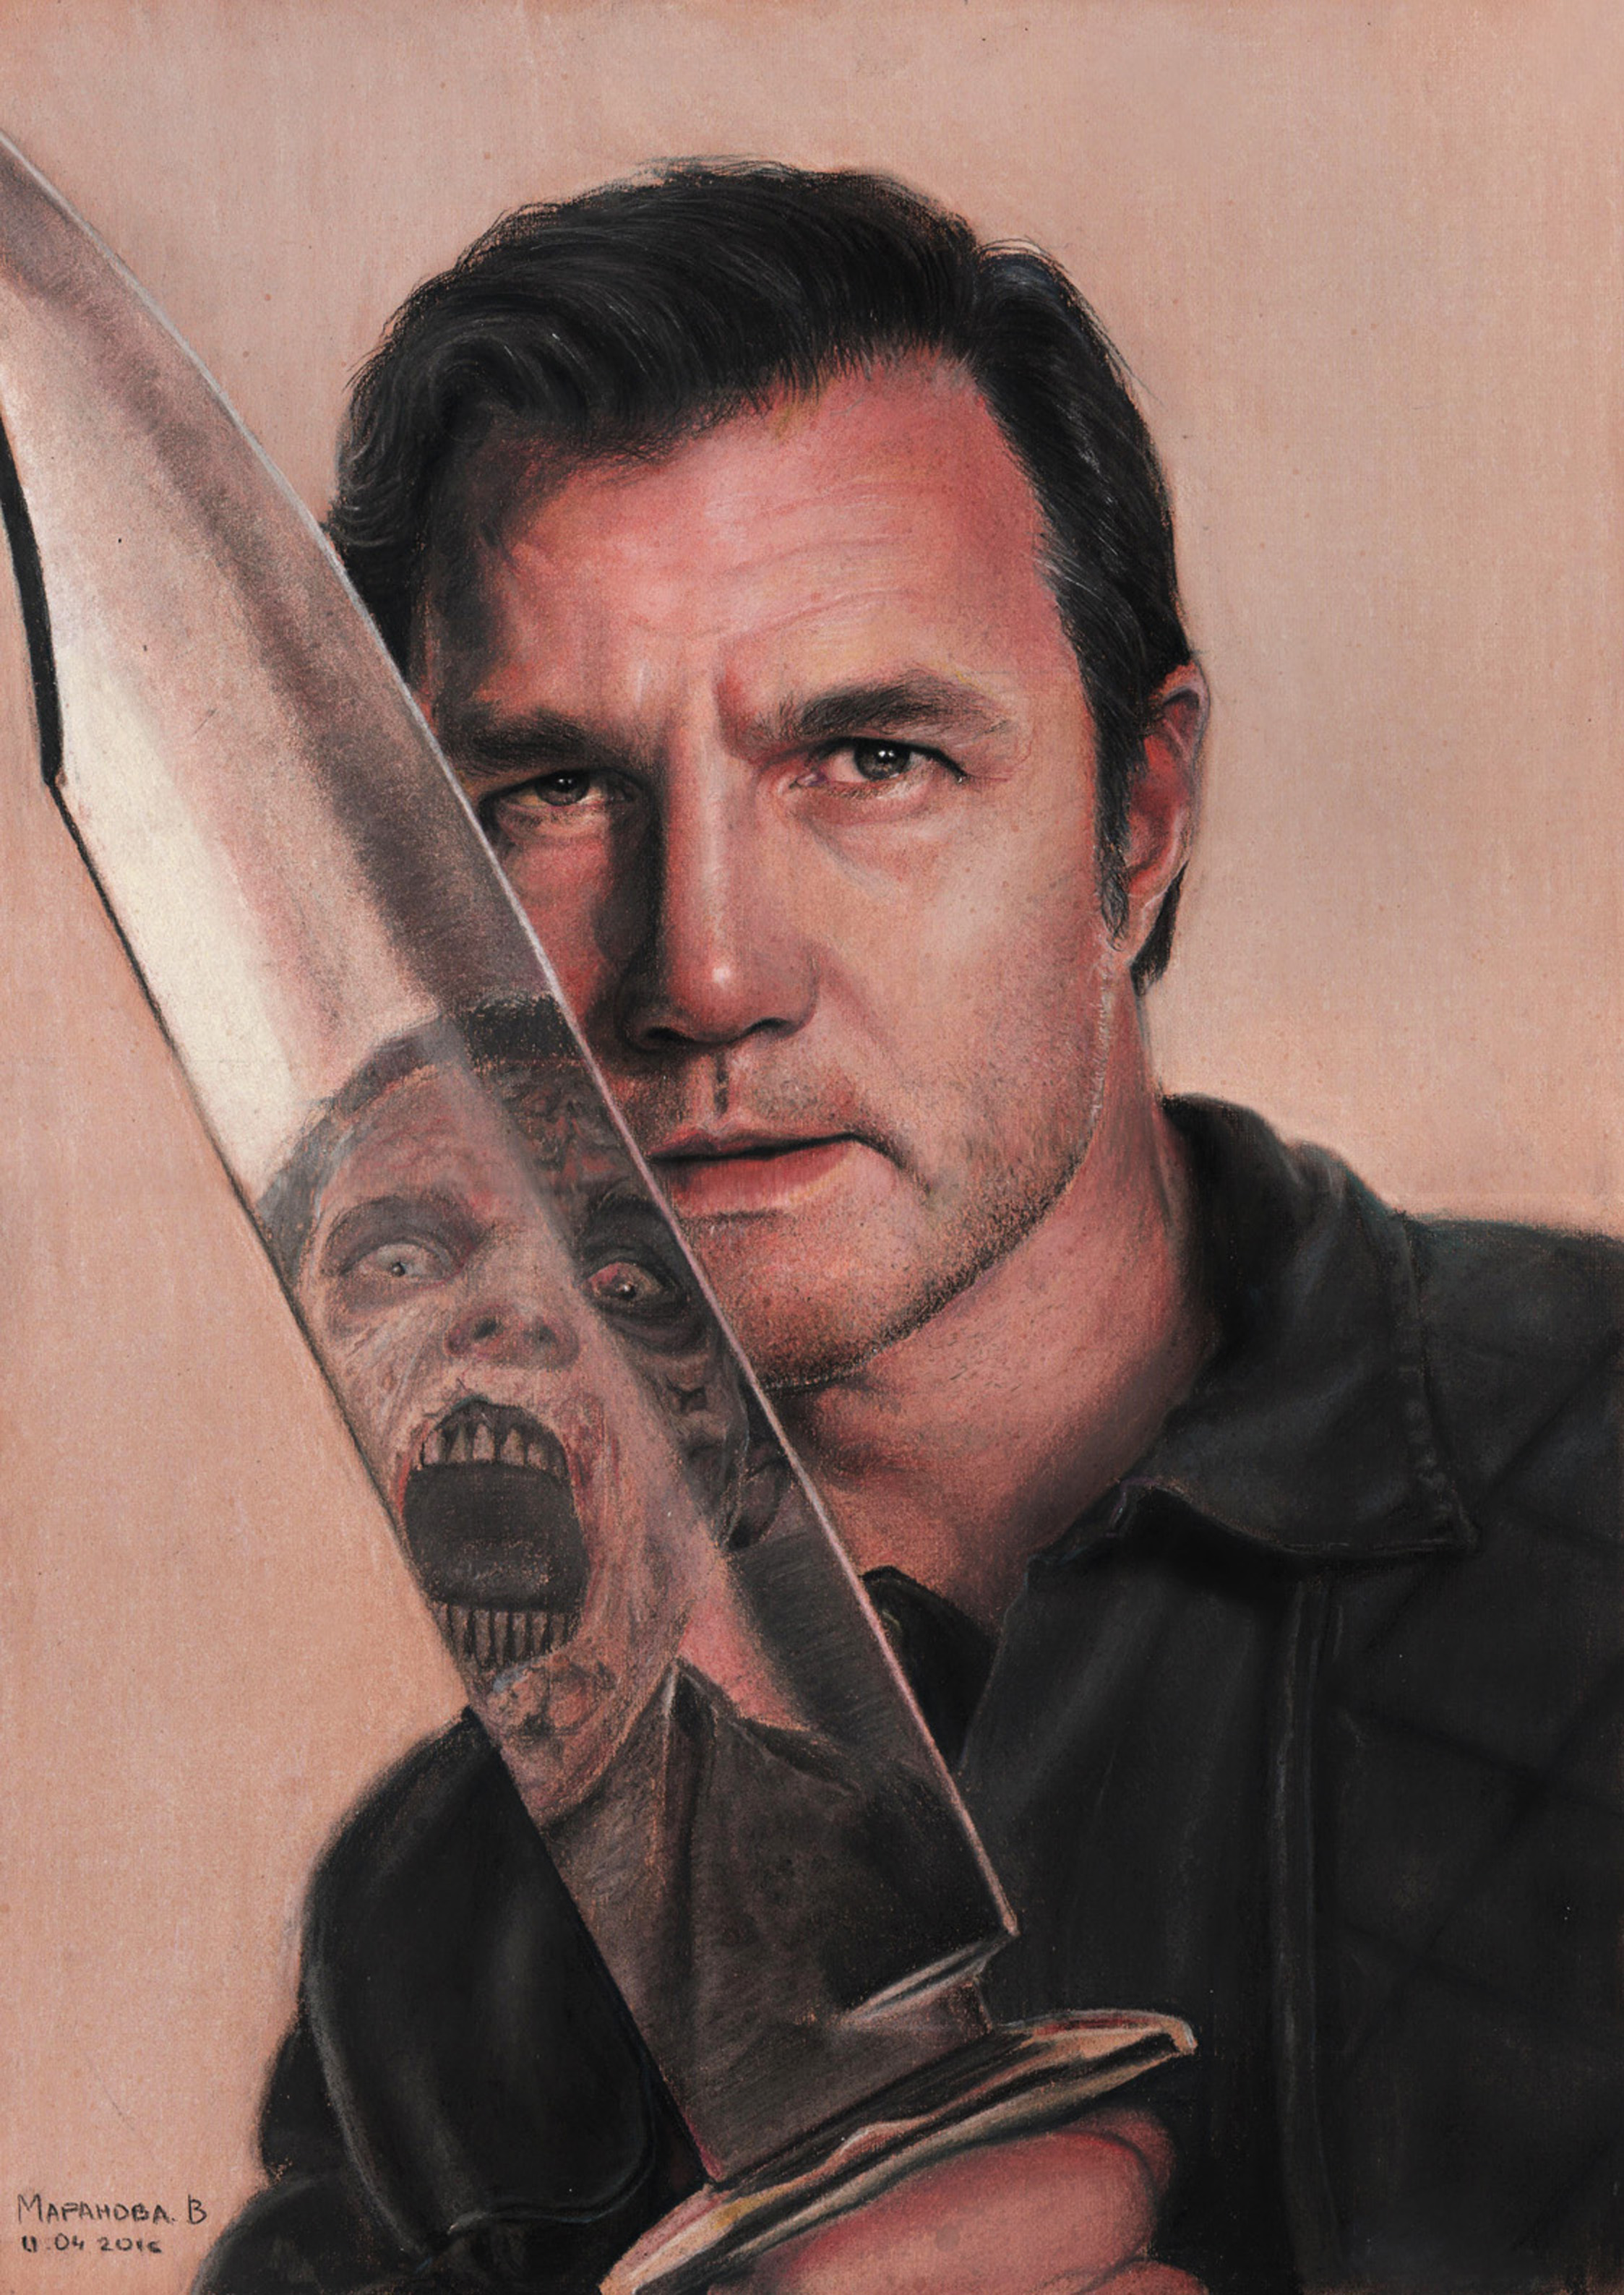 Philip Blake aka Governor (David Morrissey) by vikygrafikk